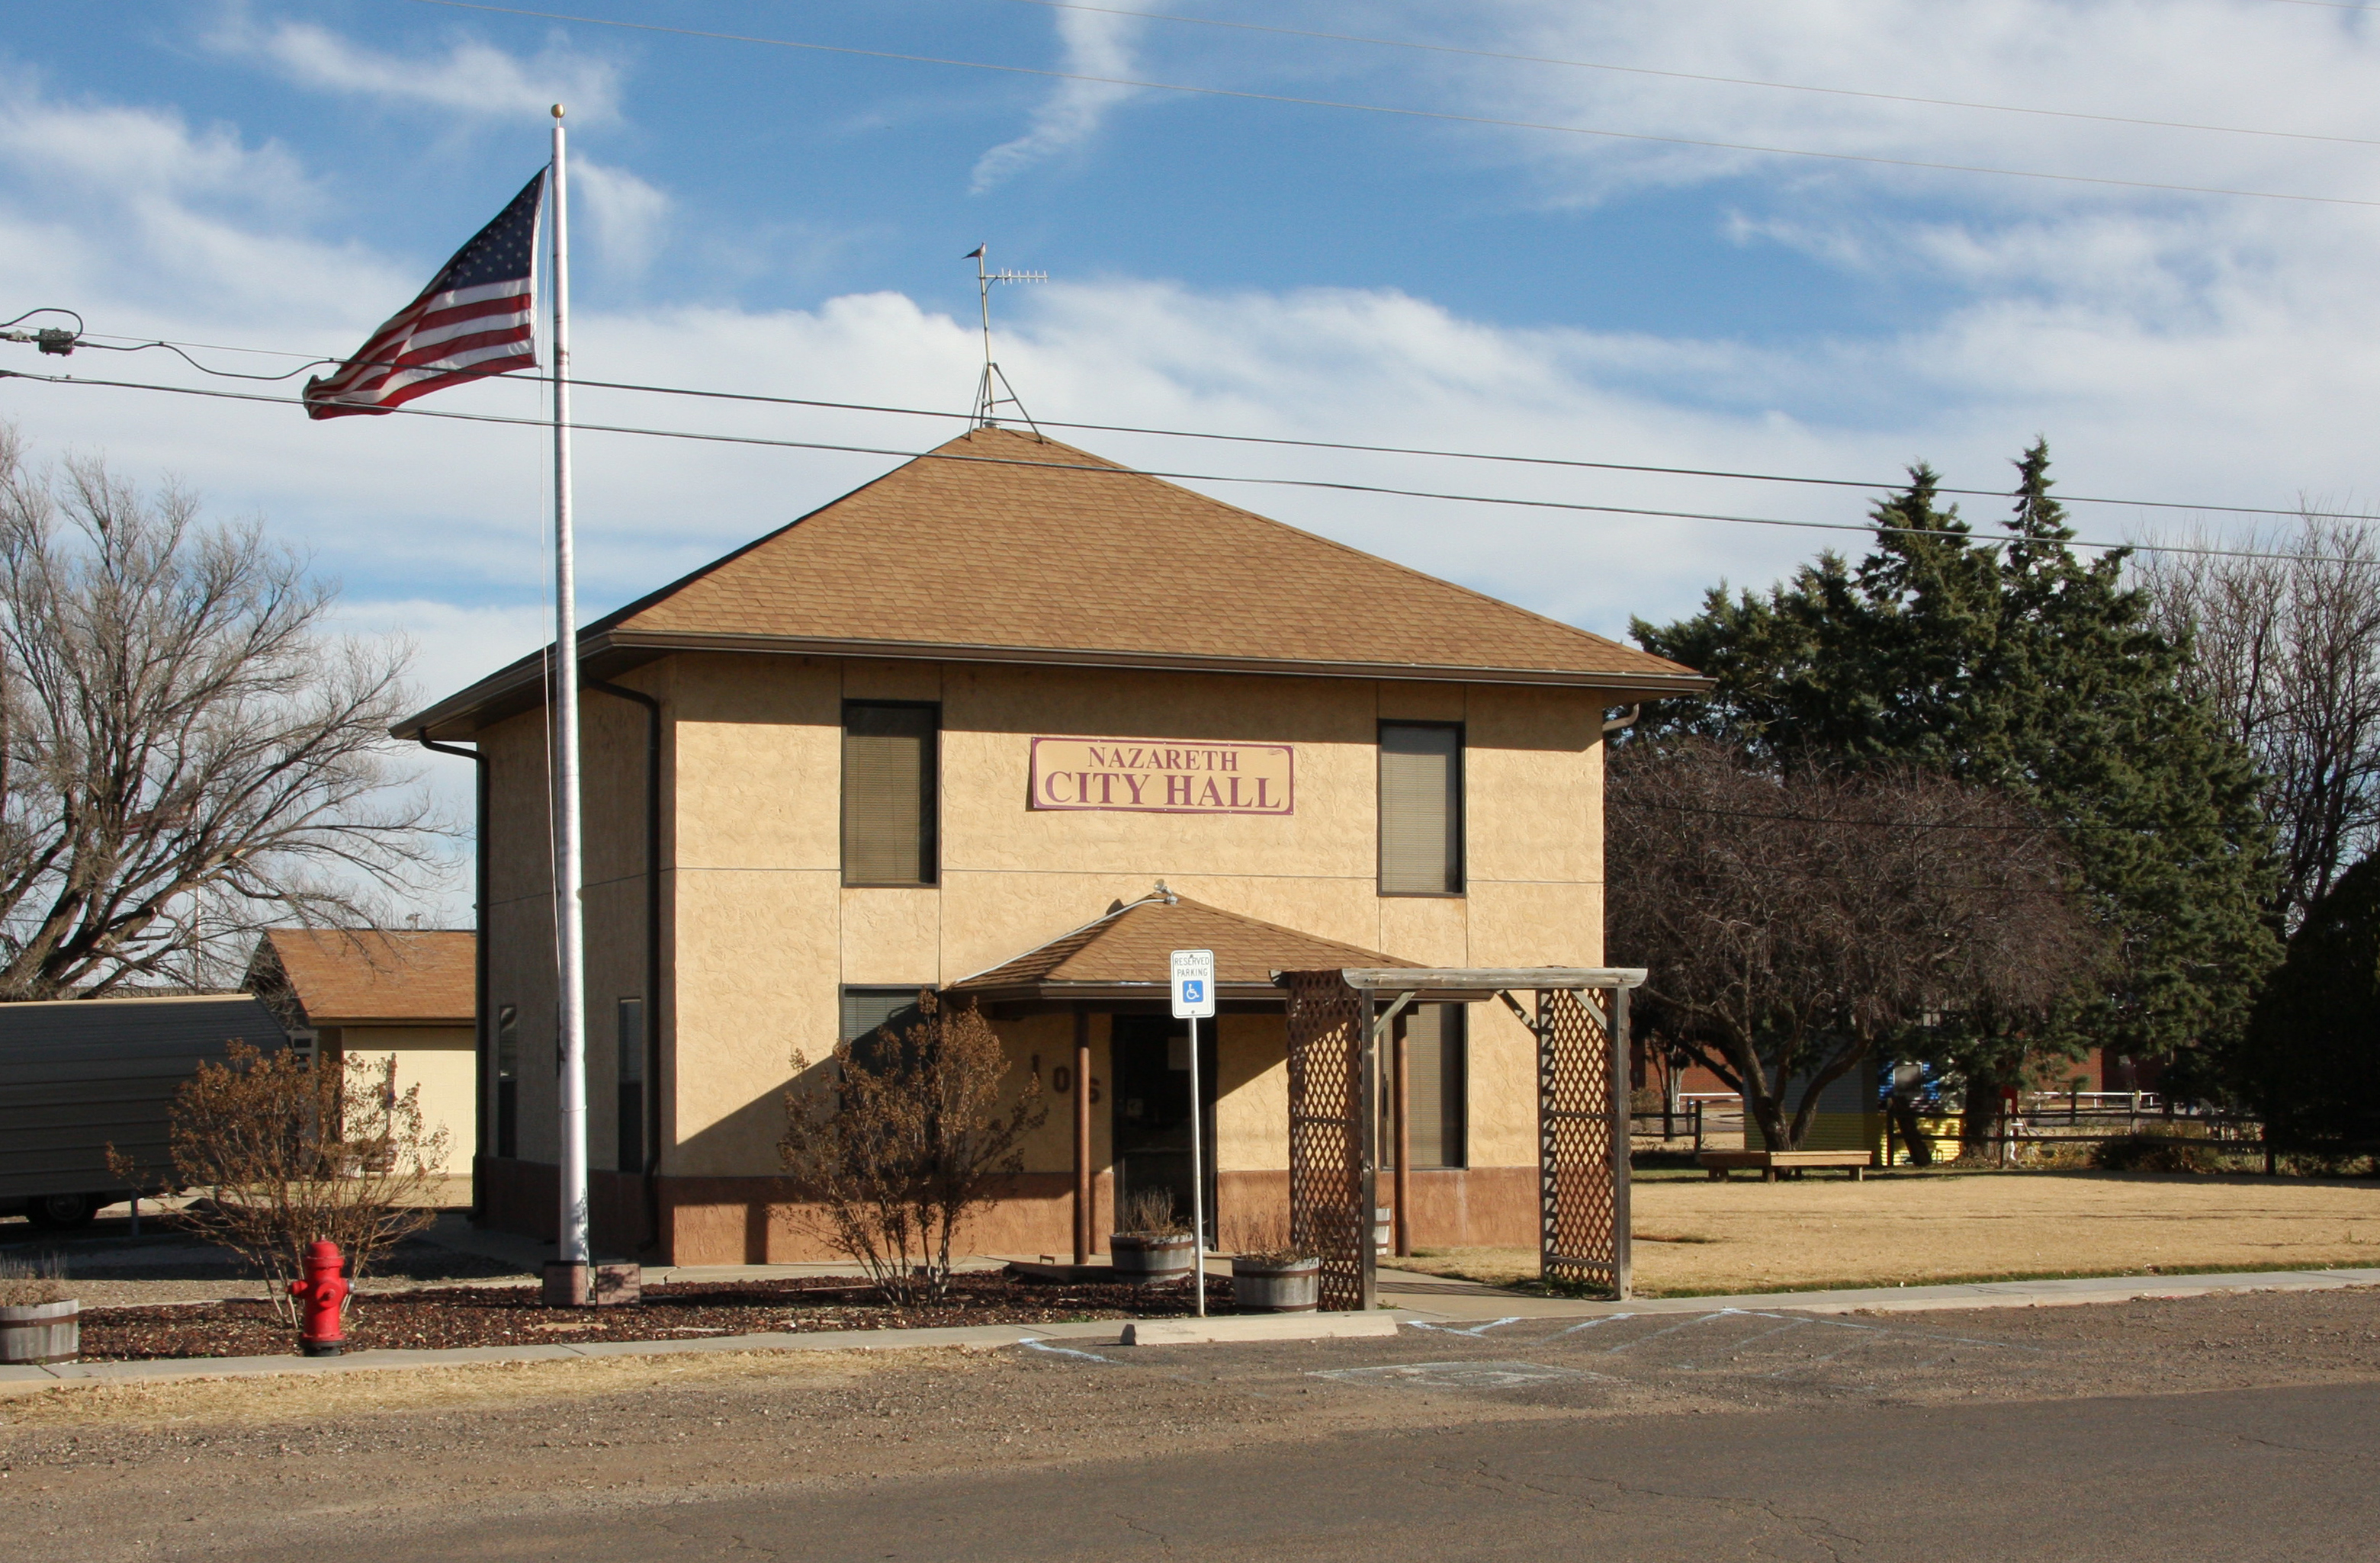 Hereford Heritage Funeral Home